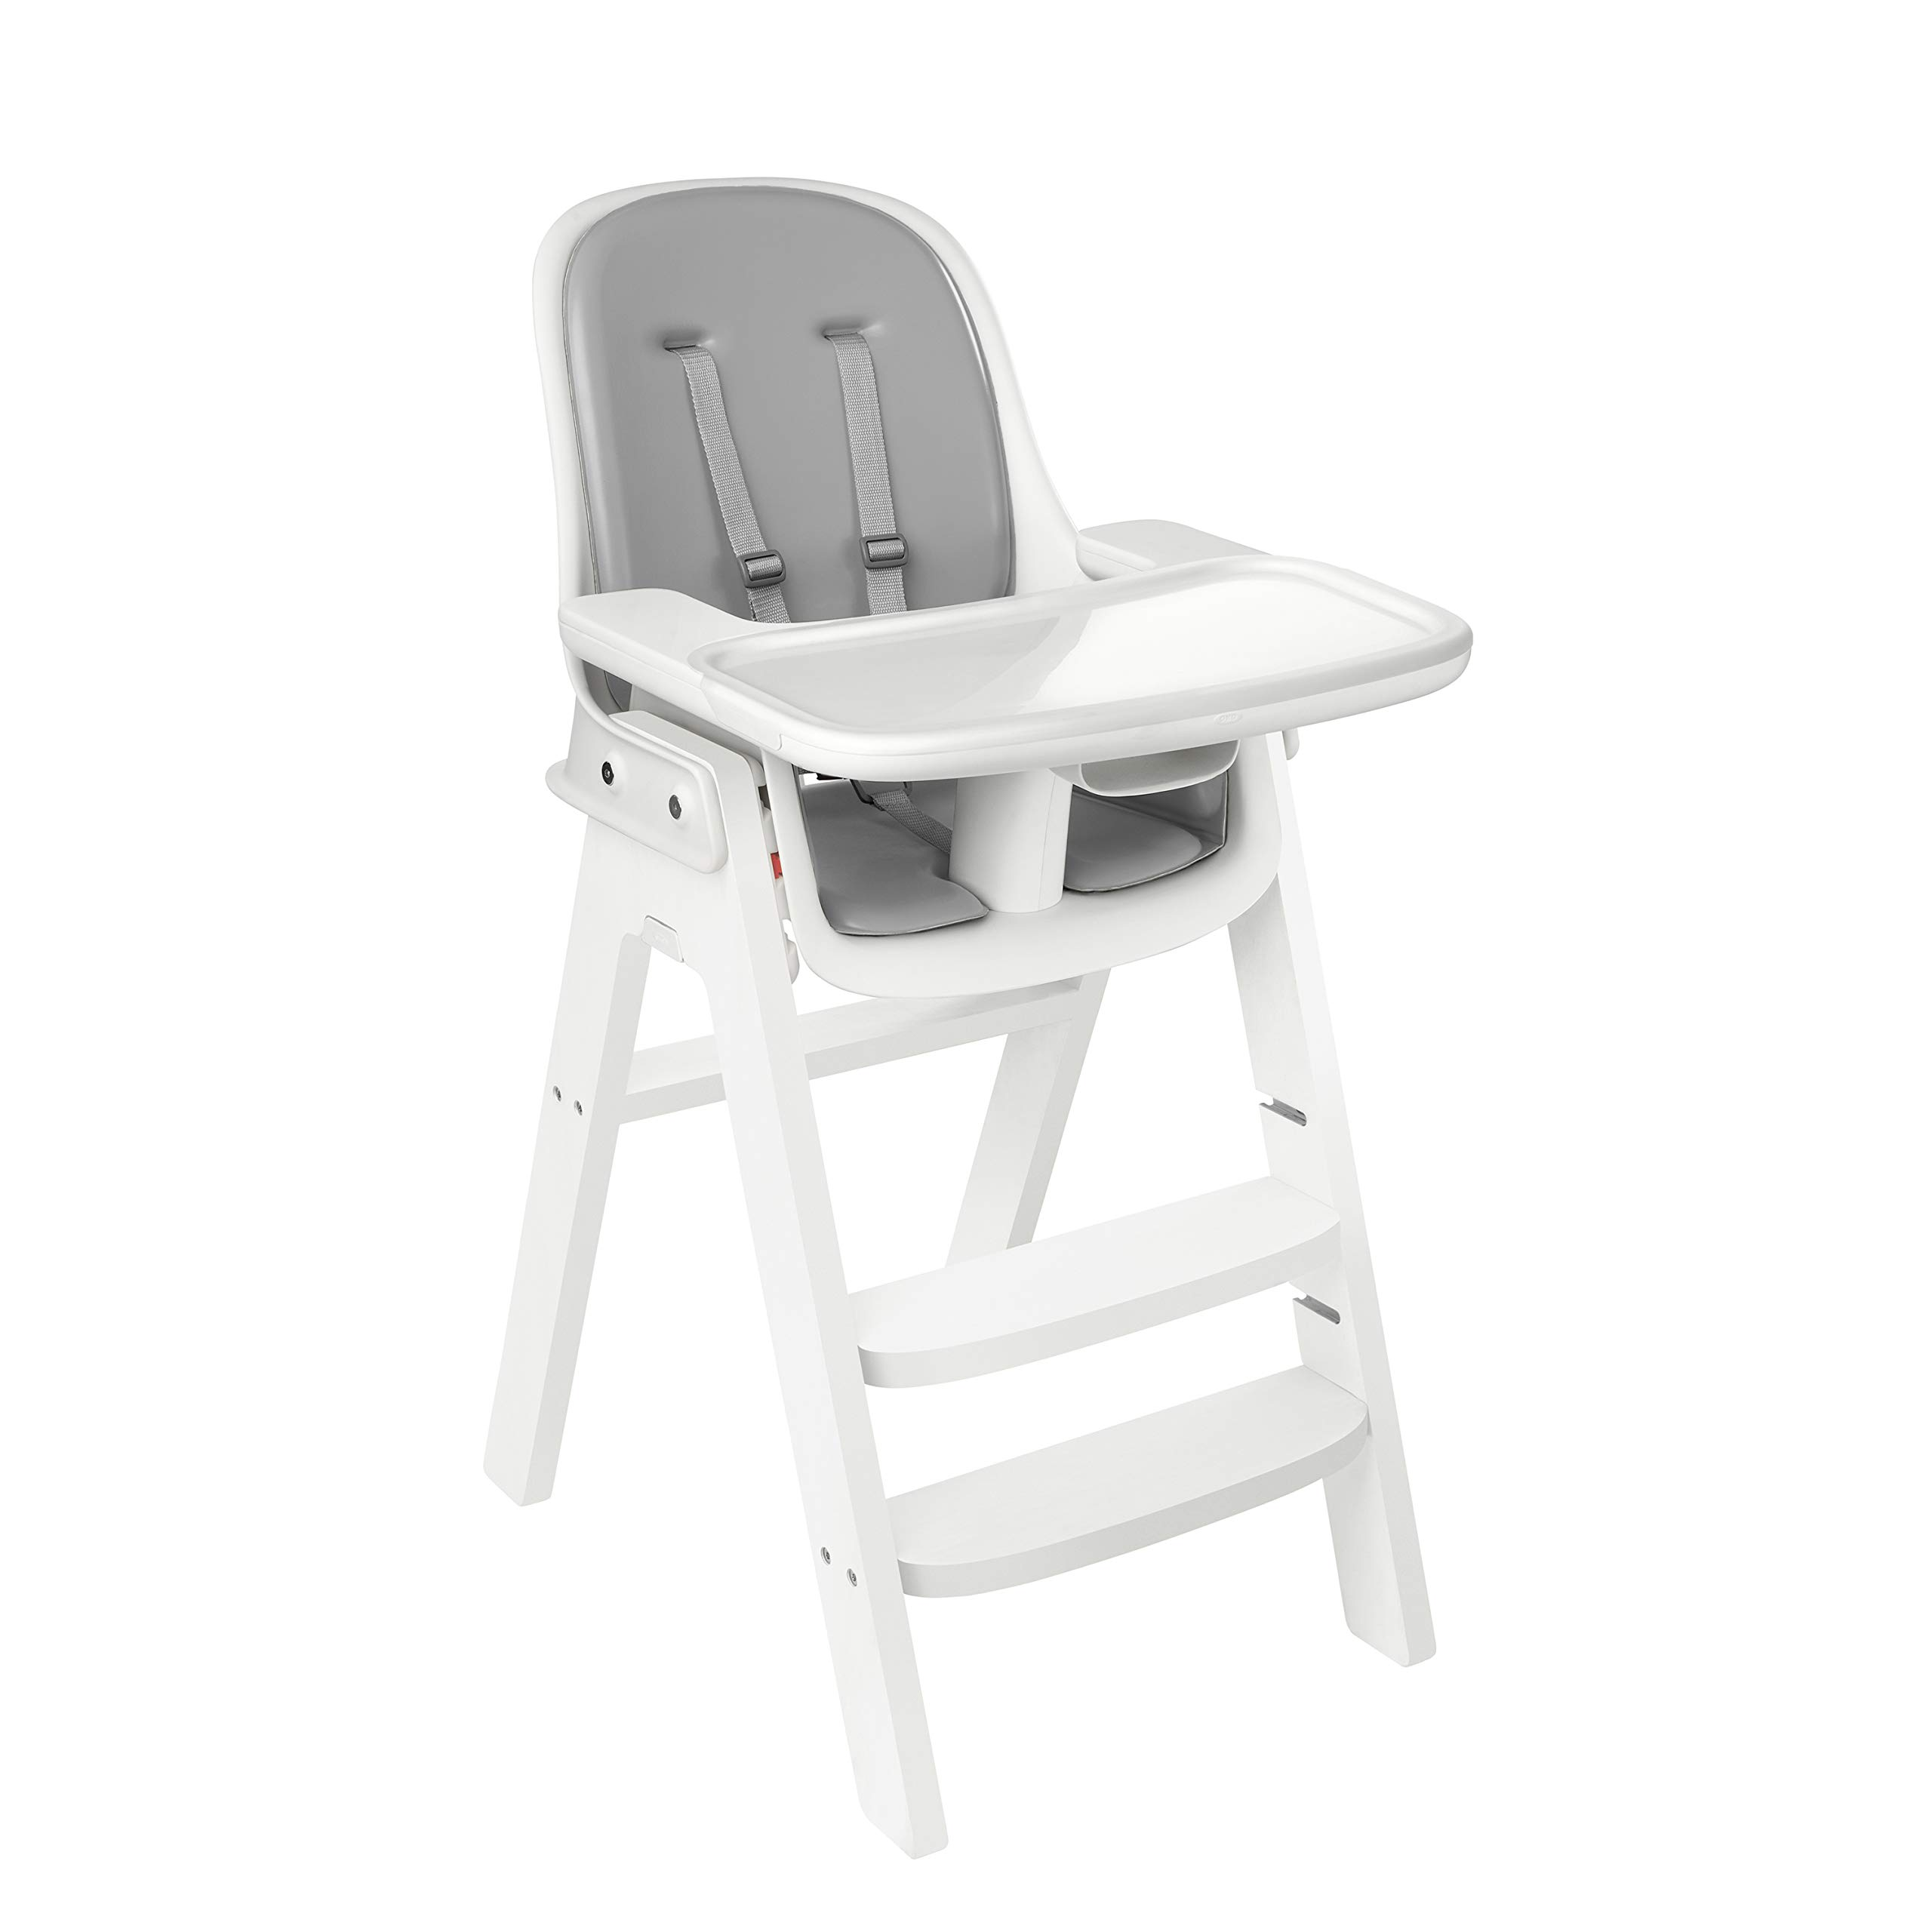 OXO Tot Sprout Chair with Tray Cover, Gray and White by OXO Tot